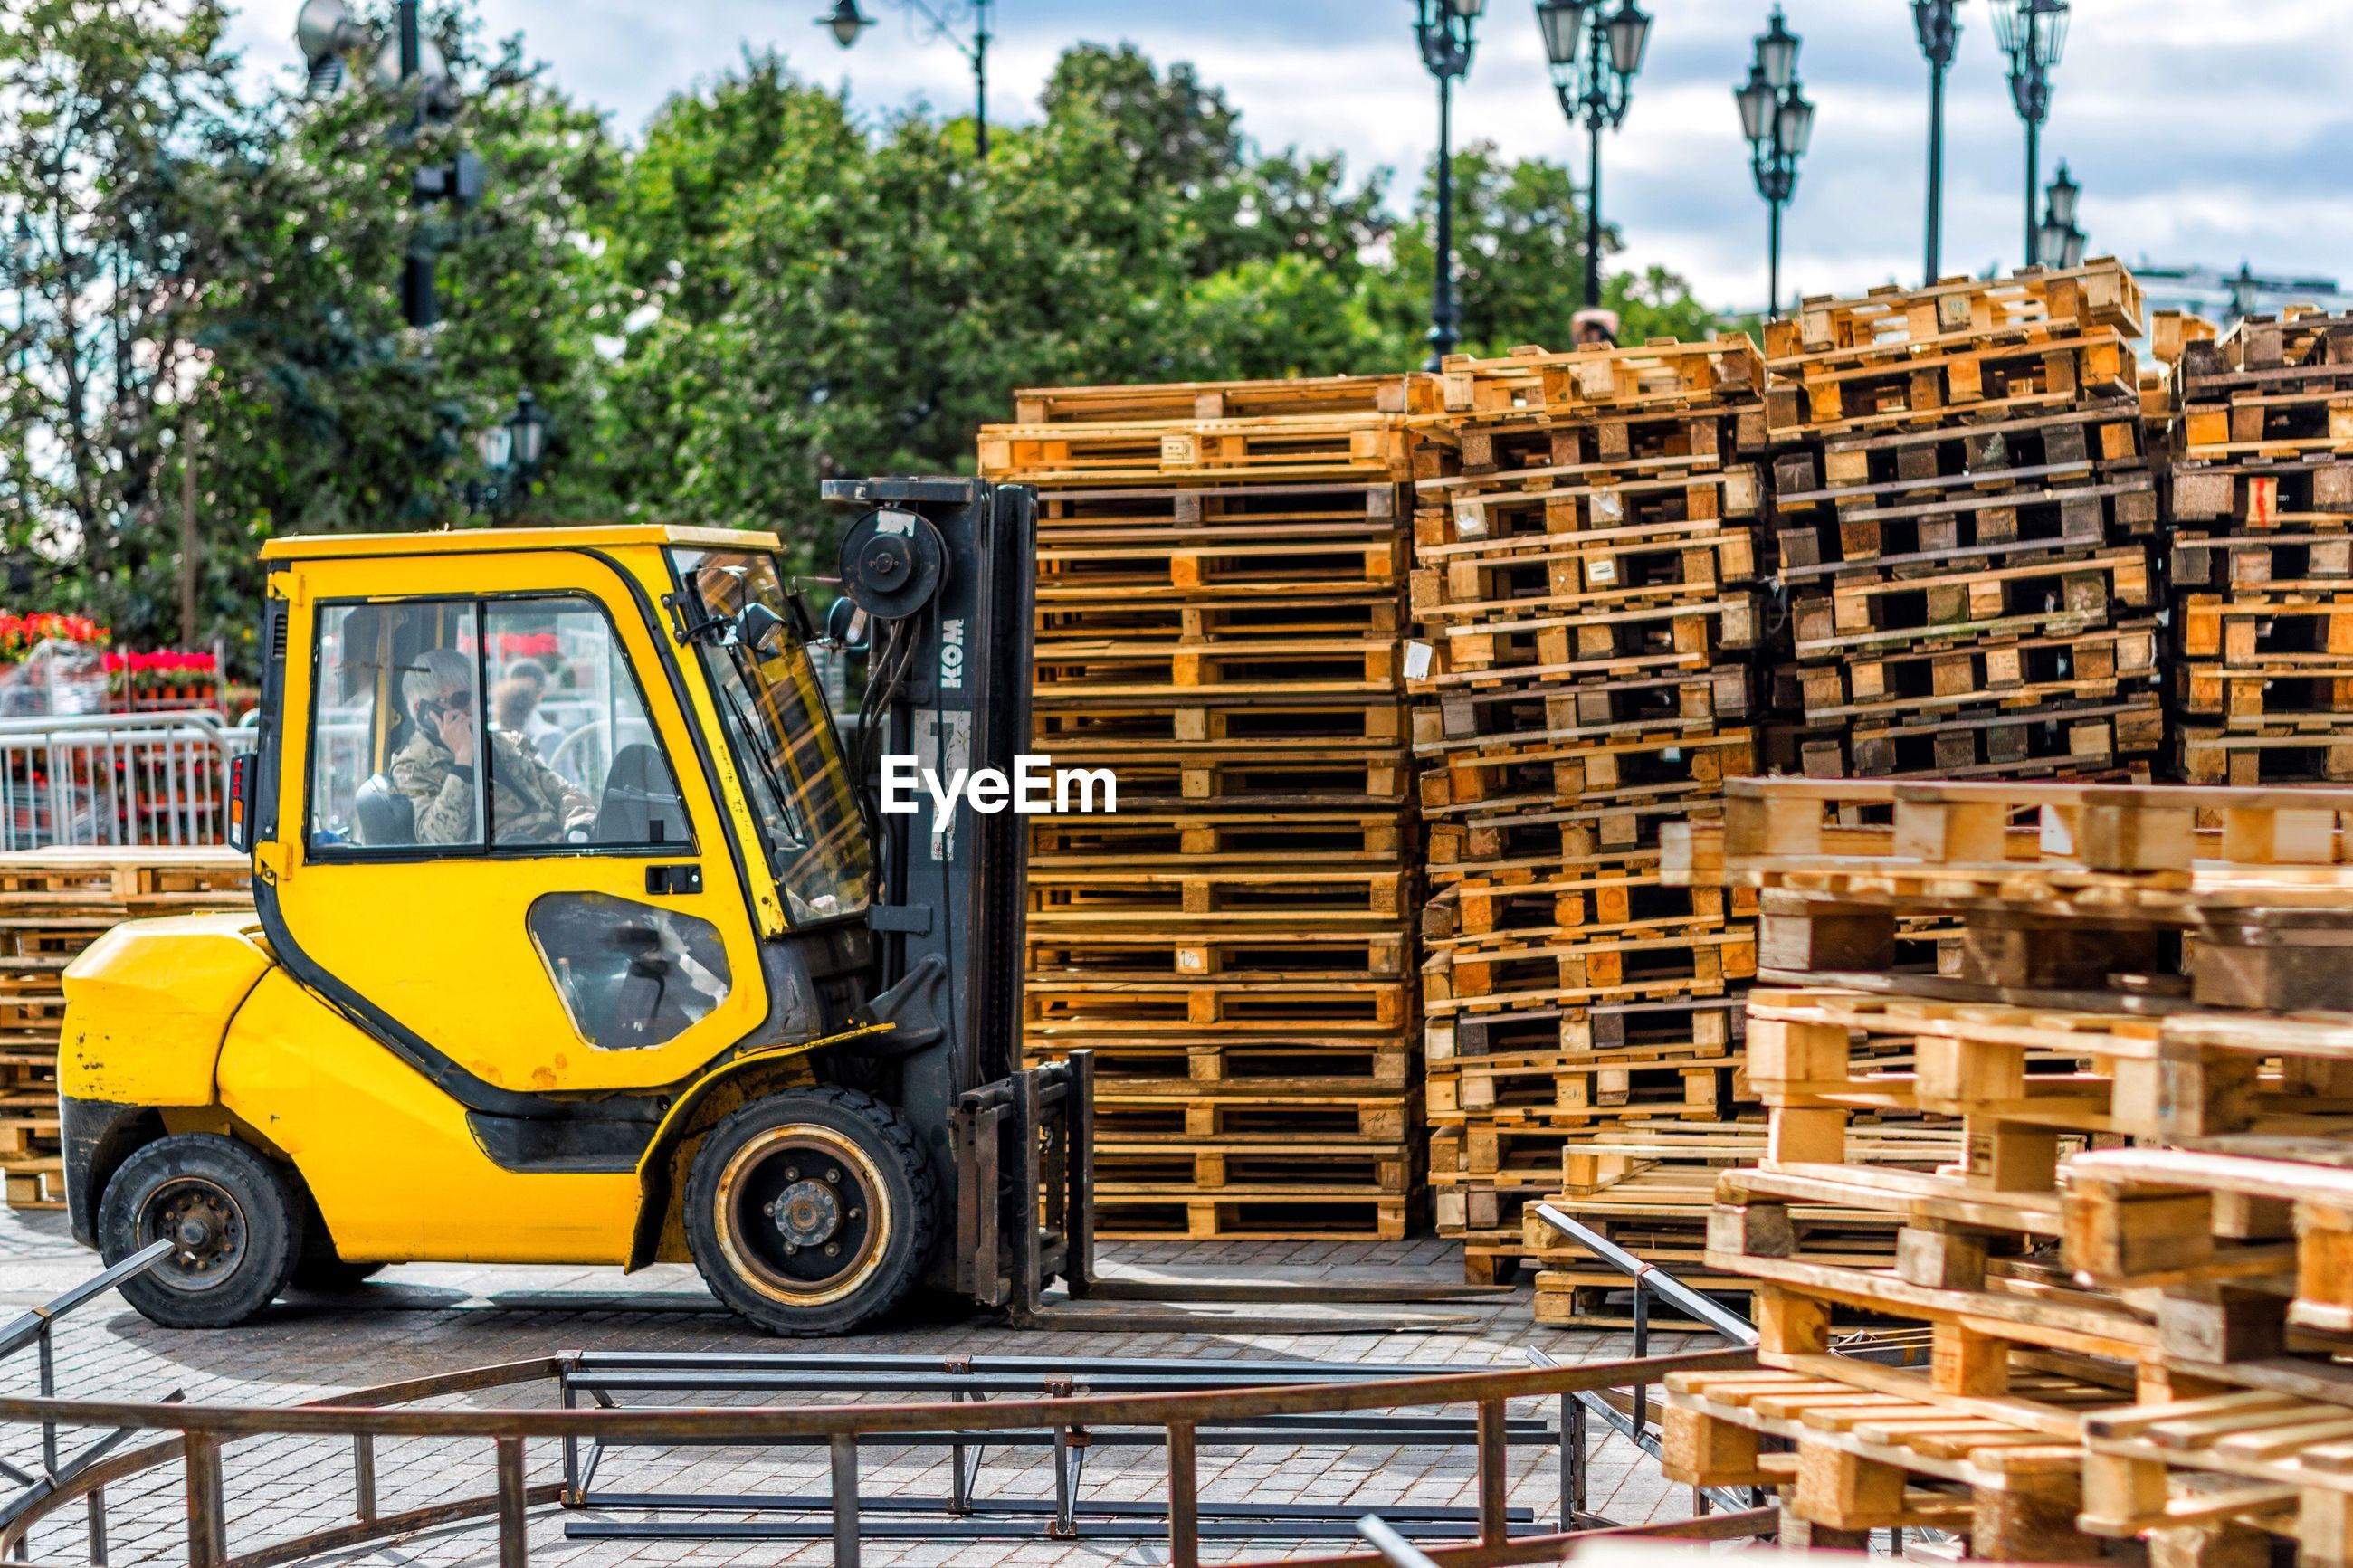 Forklift by wooden objects against trees